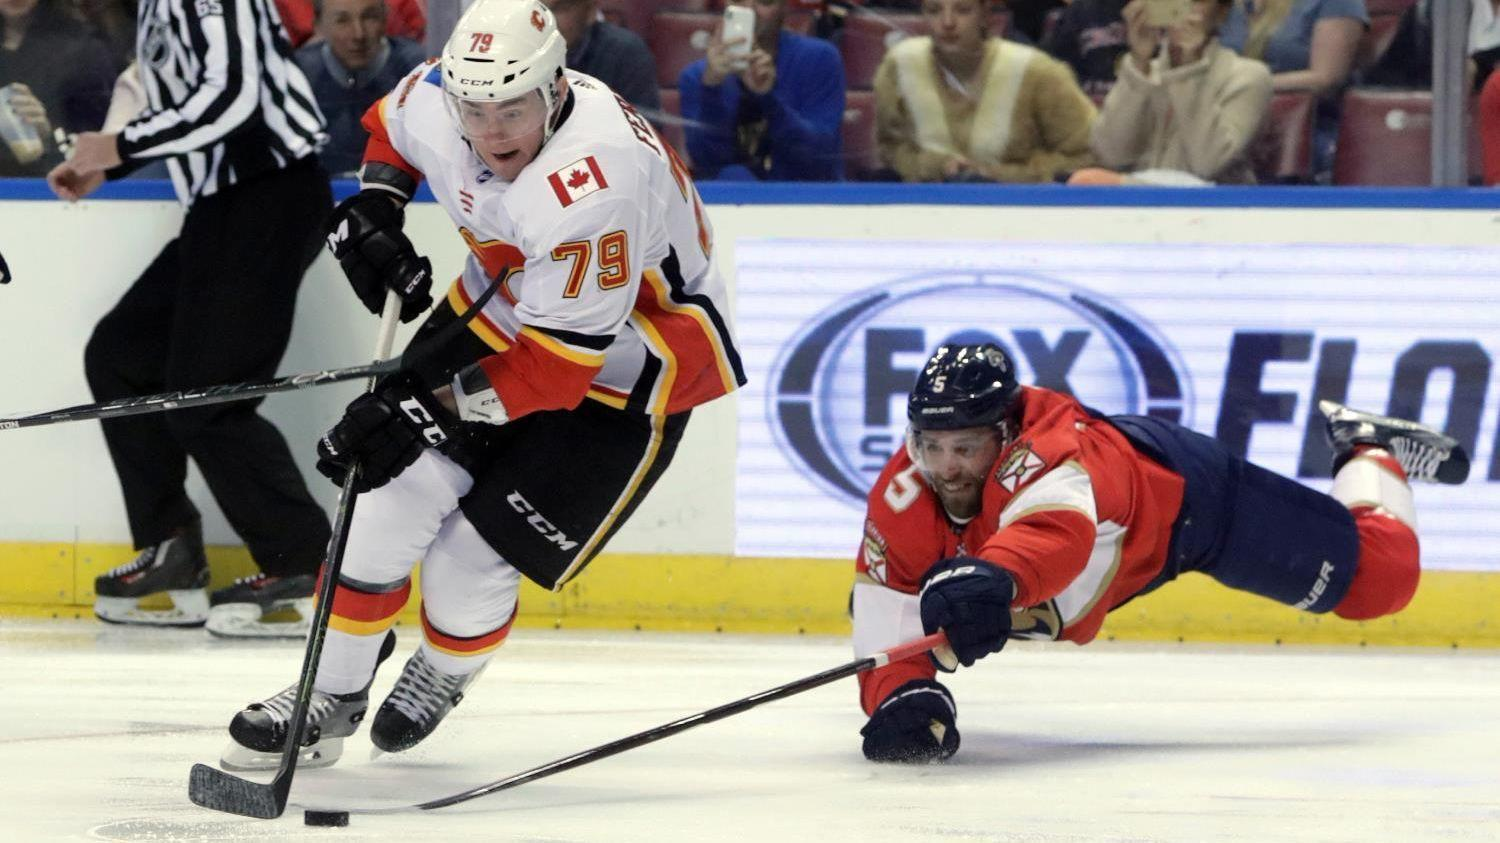 Fl-sp-panthers-flames-20180112